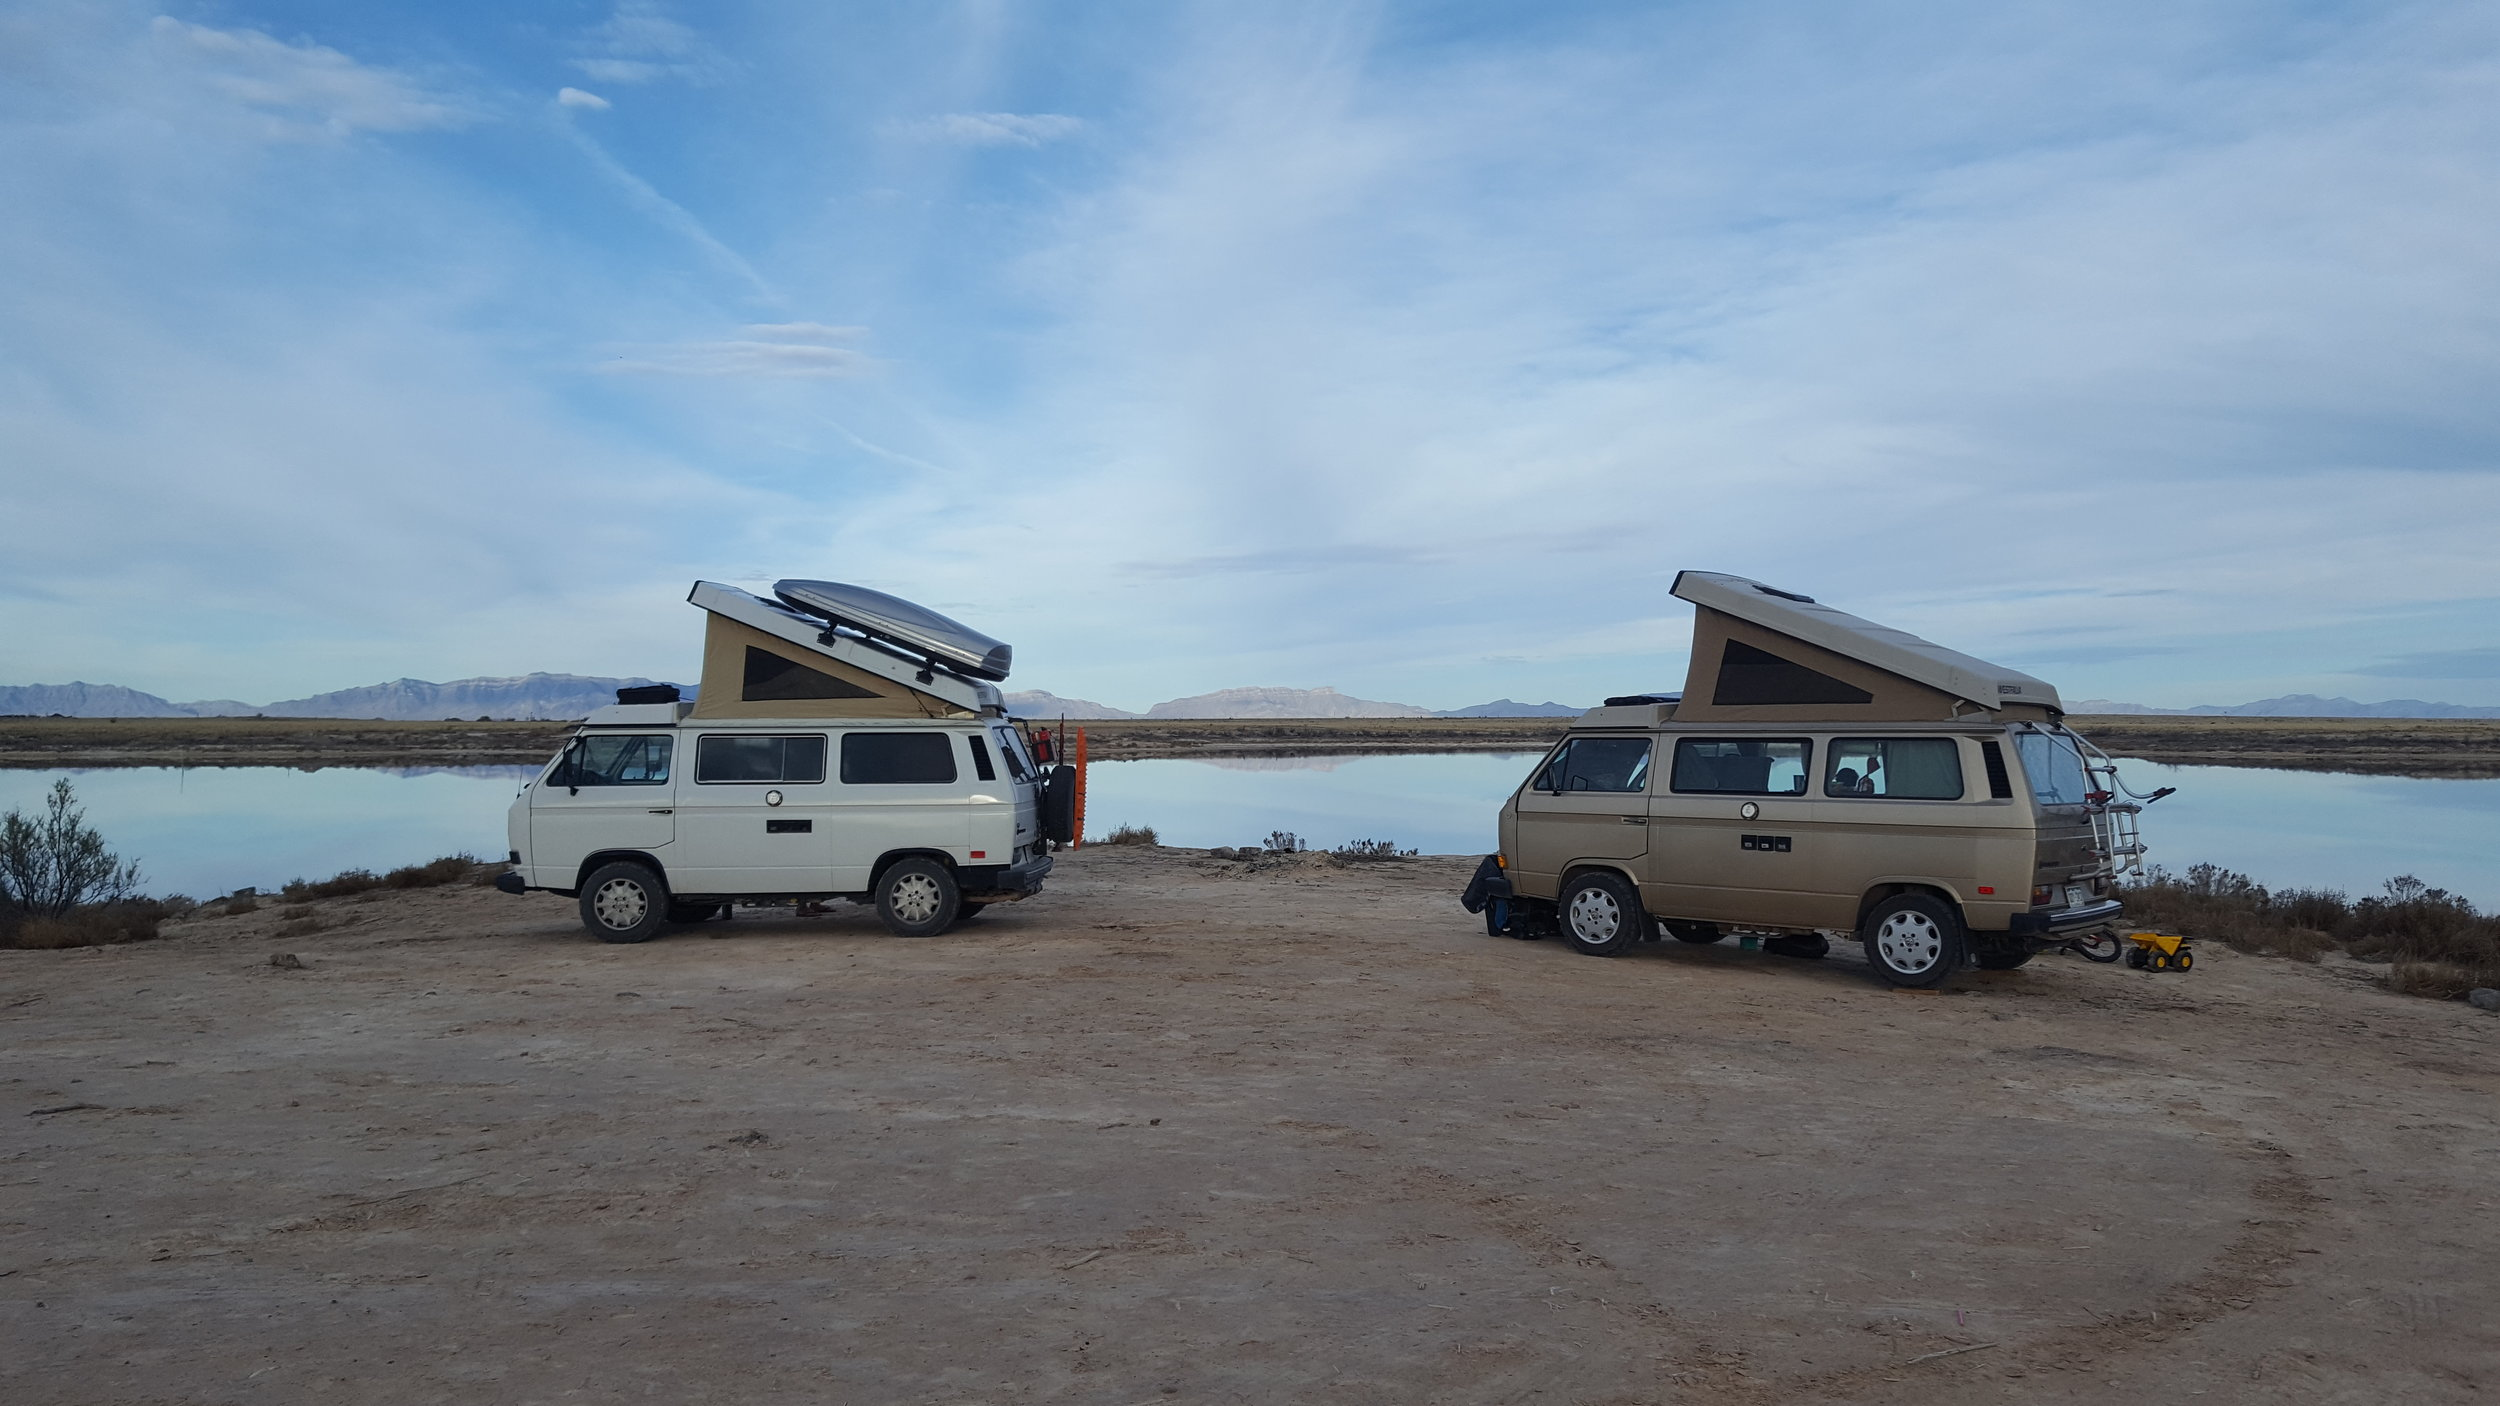 I failed to take pictures of our friends this go round but here are our vans... @everyroadleadstohome and @wehitpause